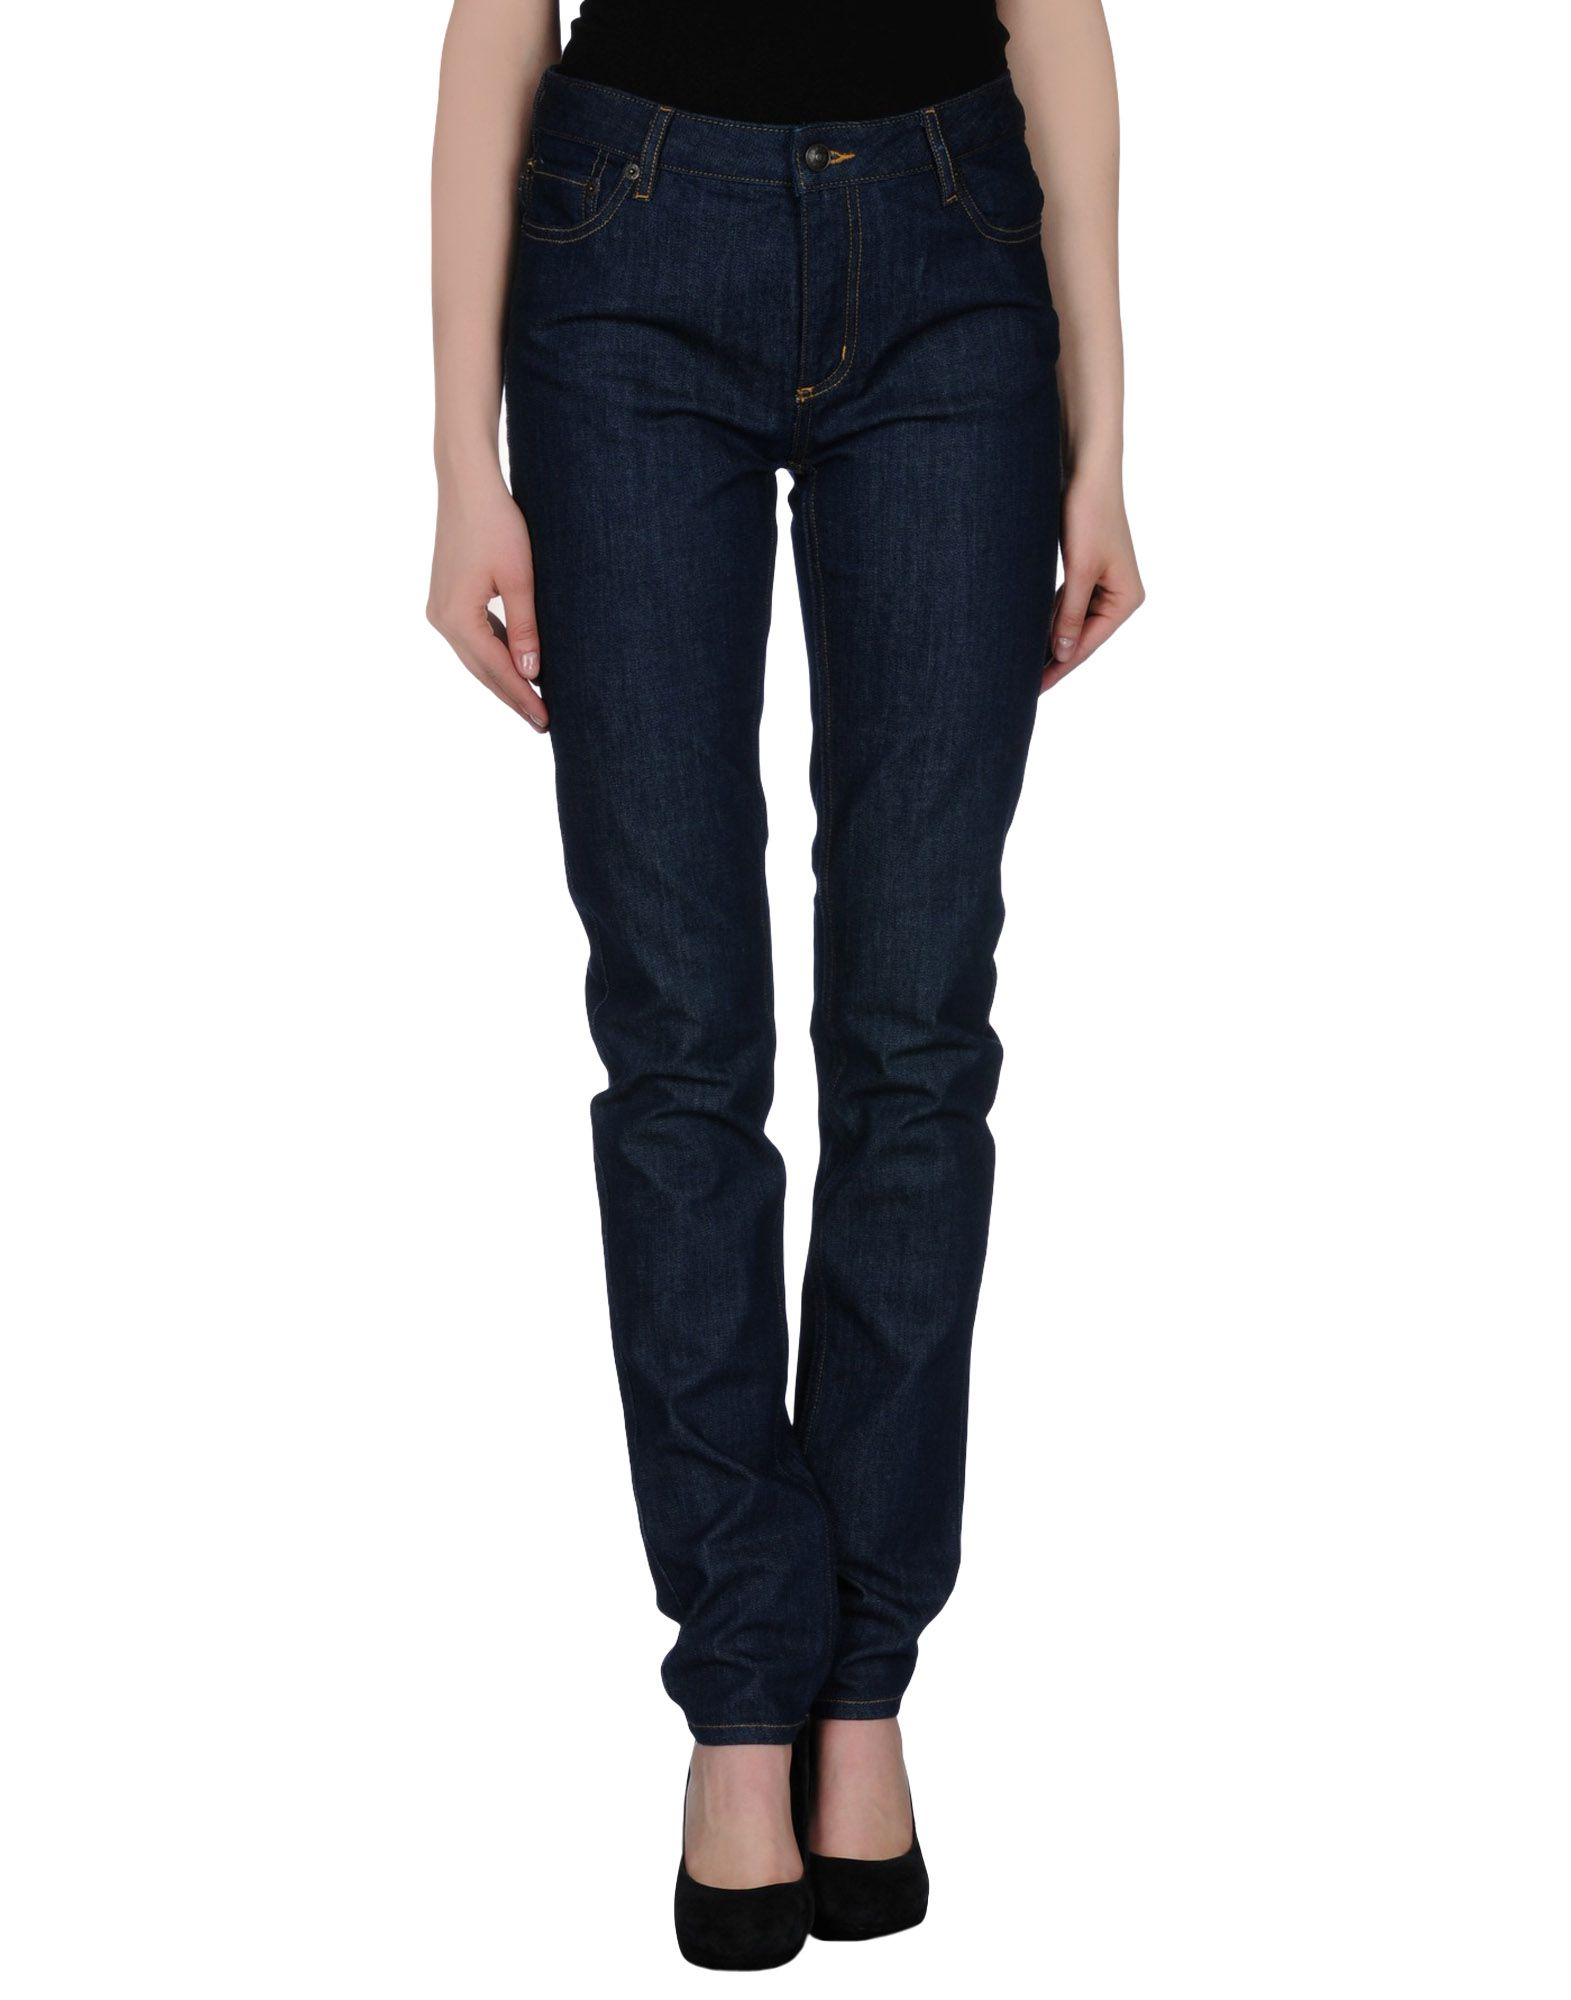 SEE BY CHLOÉ Jeans